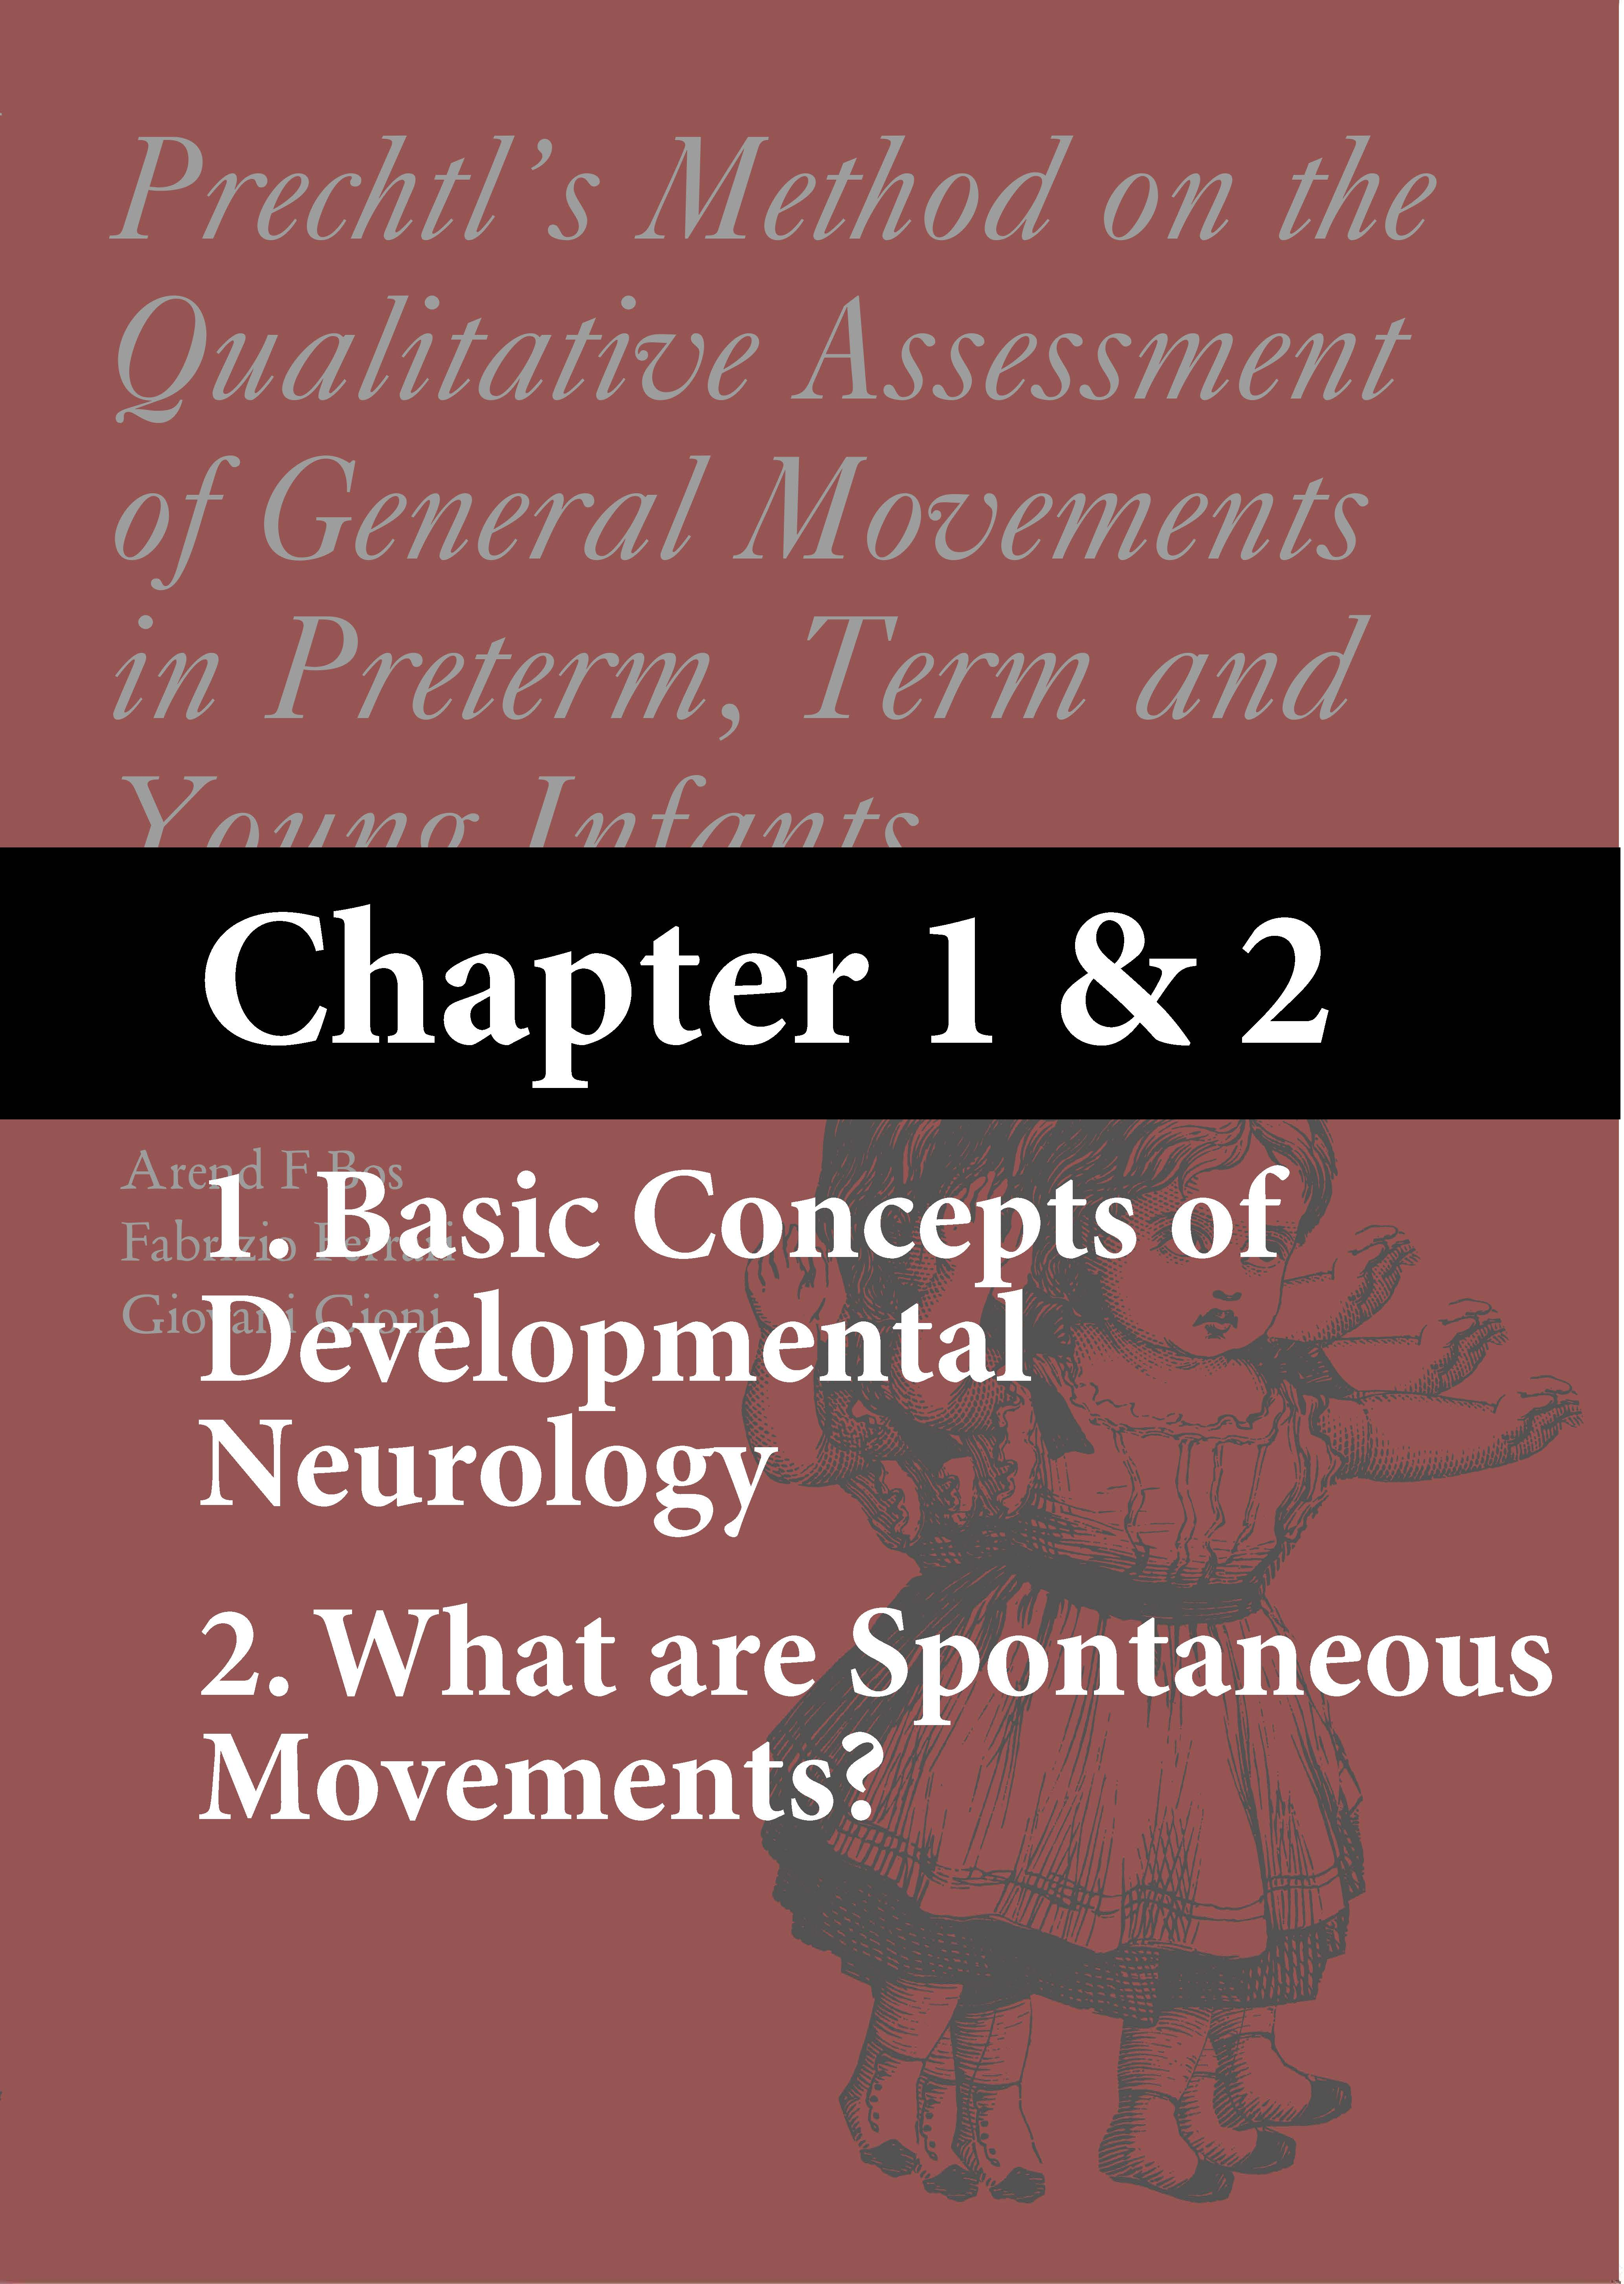 Prechtl's Method on the Qualitative Assessment of General Movements in Preterm, Term and Young Infants - Chapter 1: Basic Concepts of Developmental Neurology & Chapter 2: What are Spontaneous Movements? (free ebook)